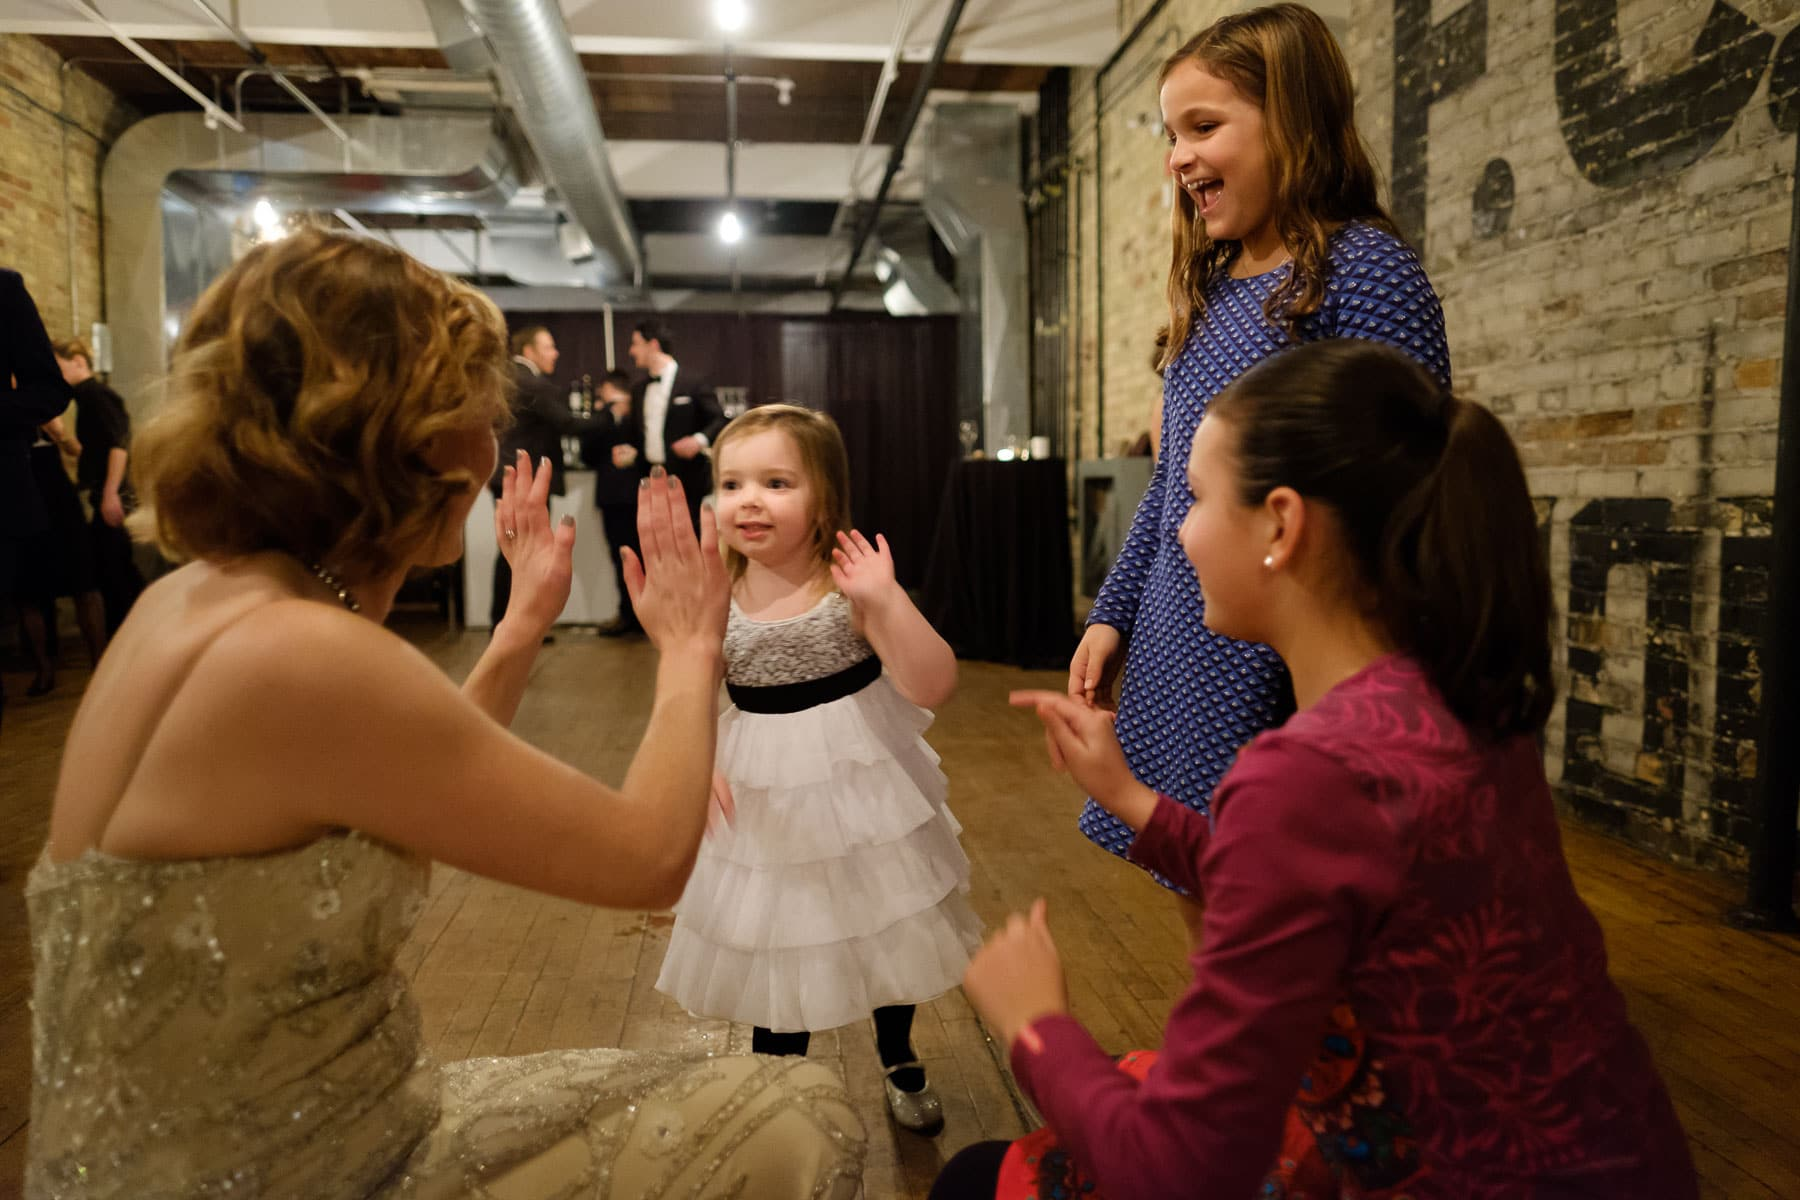 Bride high fives the flower girl on the dancefloor of the The Burroughes building wedding.